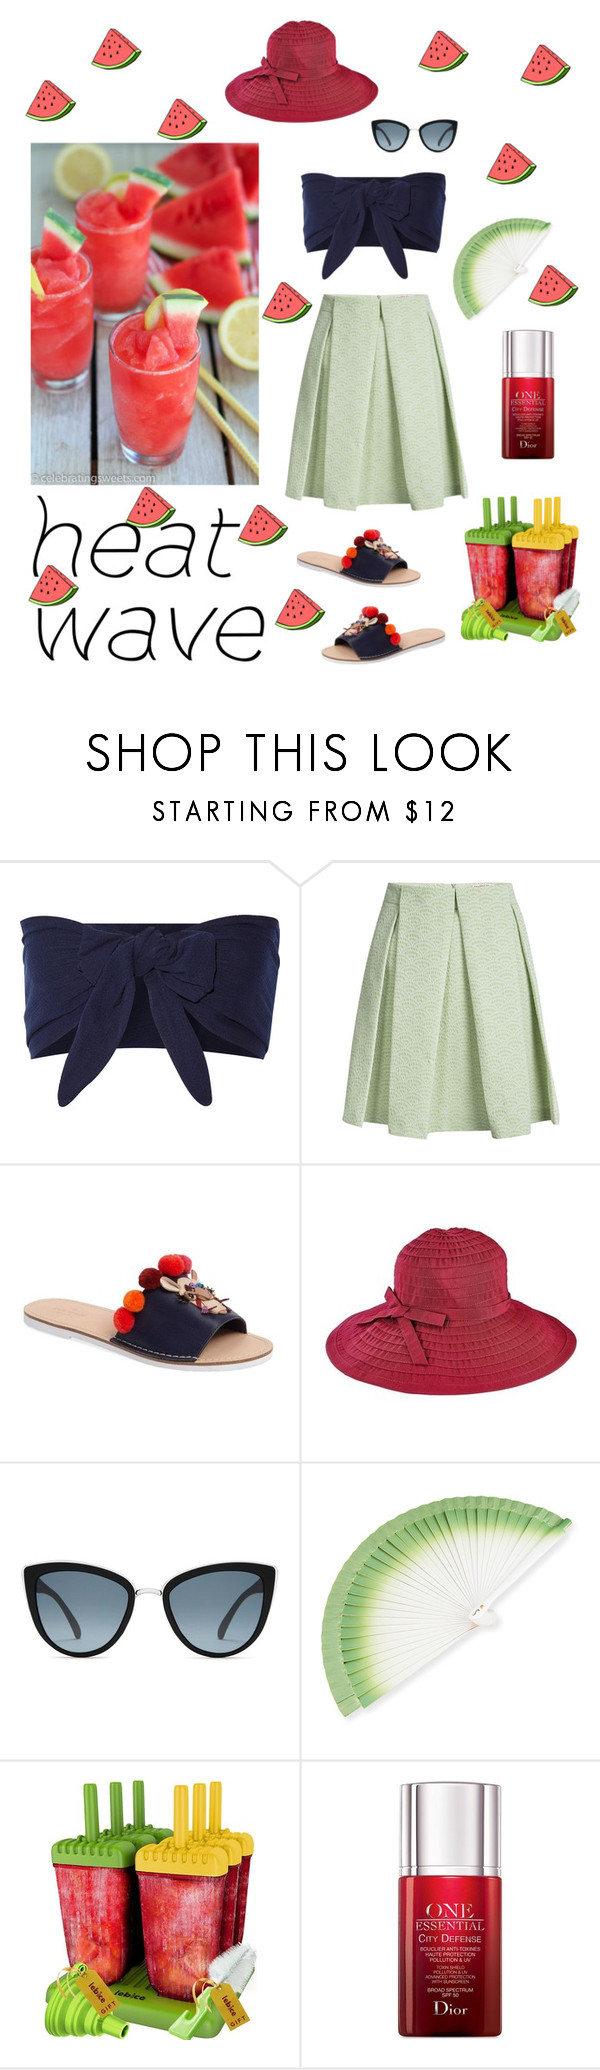 """""""Heat wave"""" by tharusmiles ❤ liked on Polyvore featuring Solid & Striped, See by Chloé, Kate Spade, San Diego Hat Co., Topshop, FernFans and Christian Dior"""